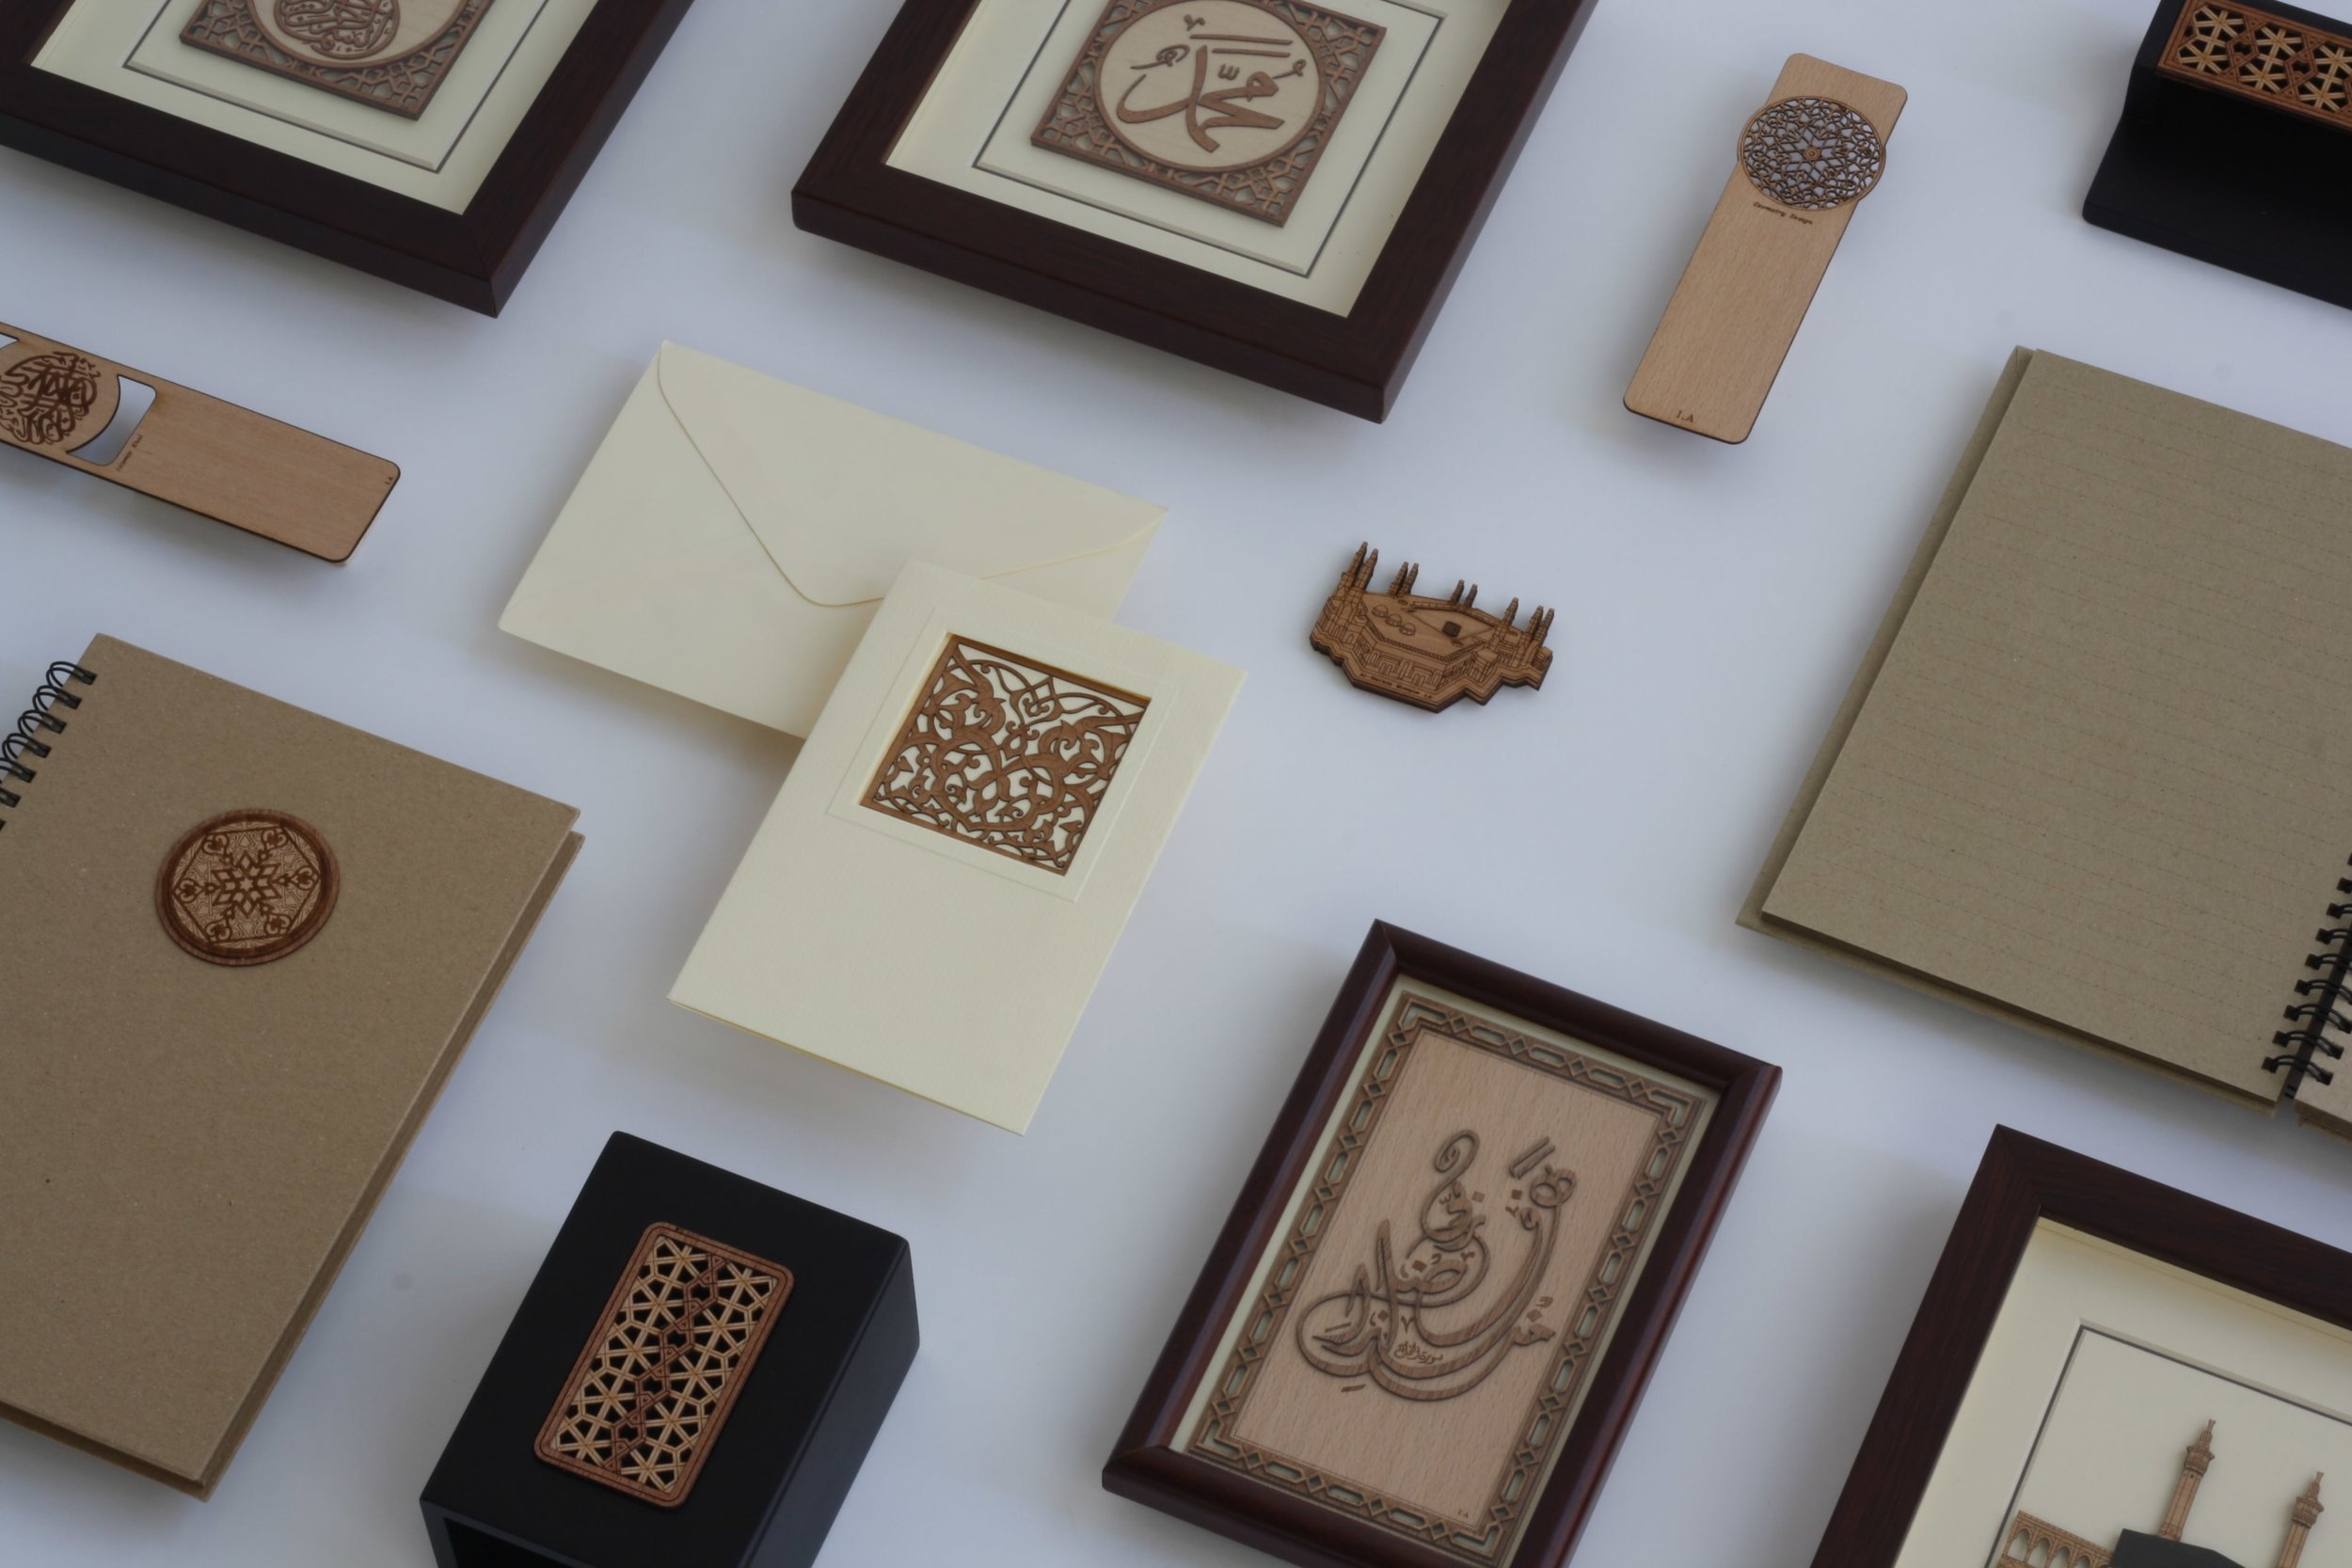 Islamic Gifts on Table